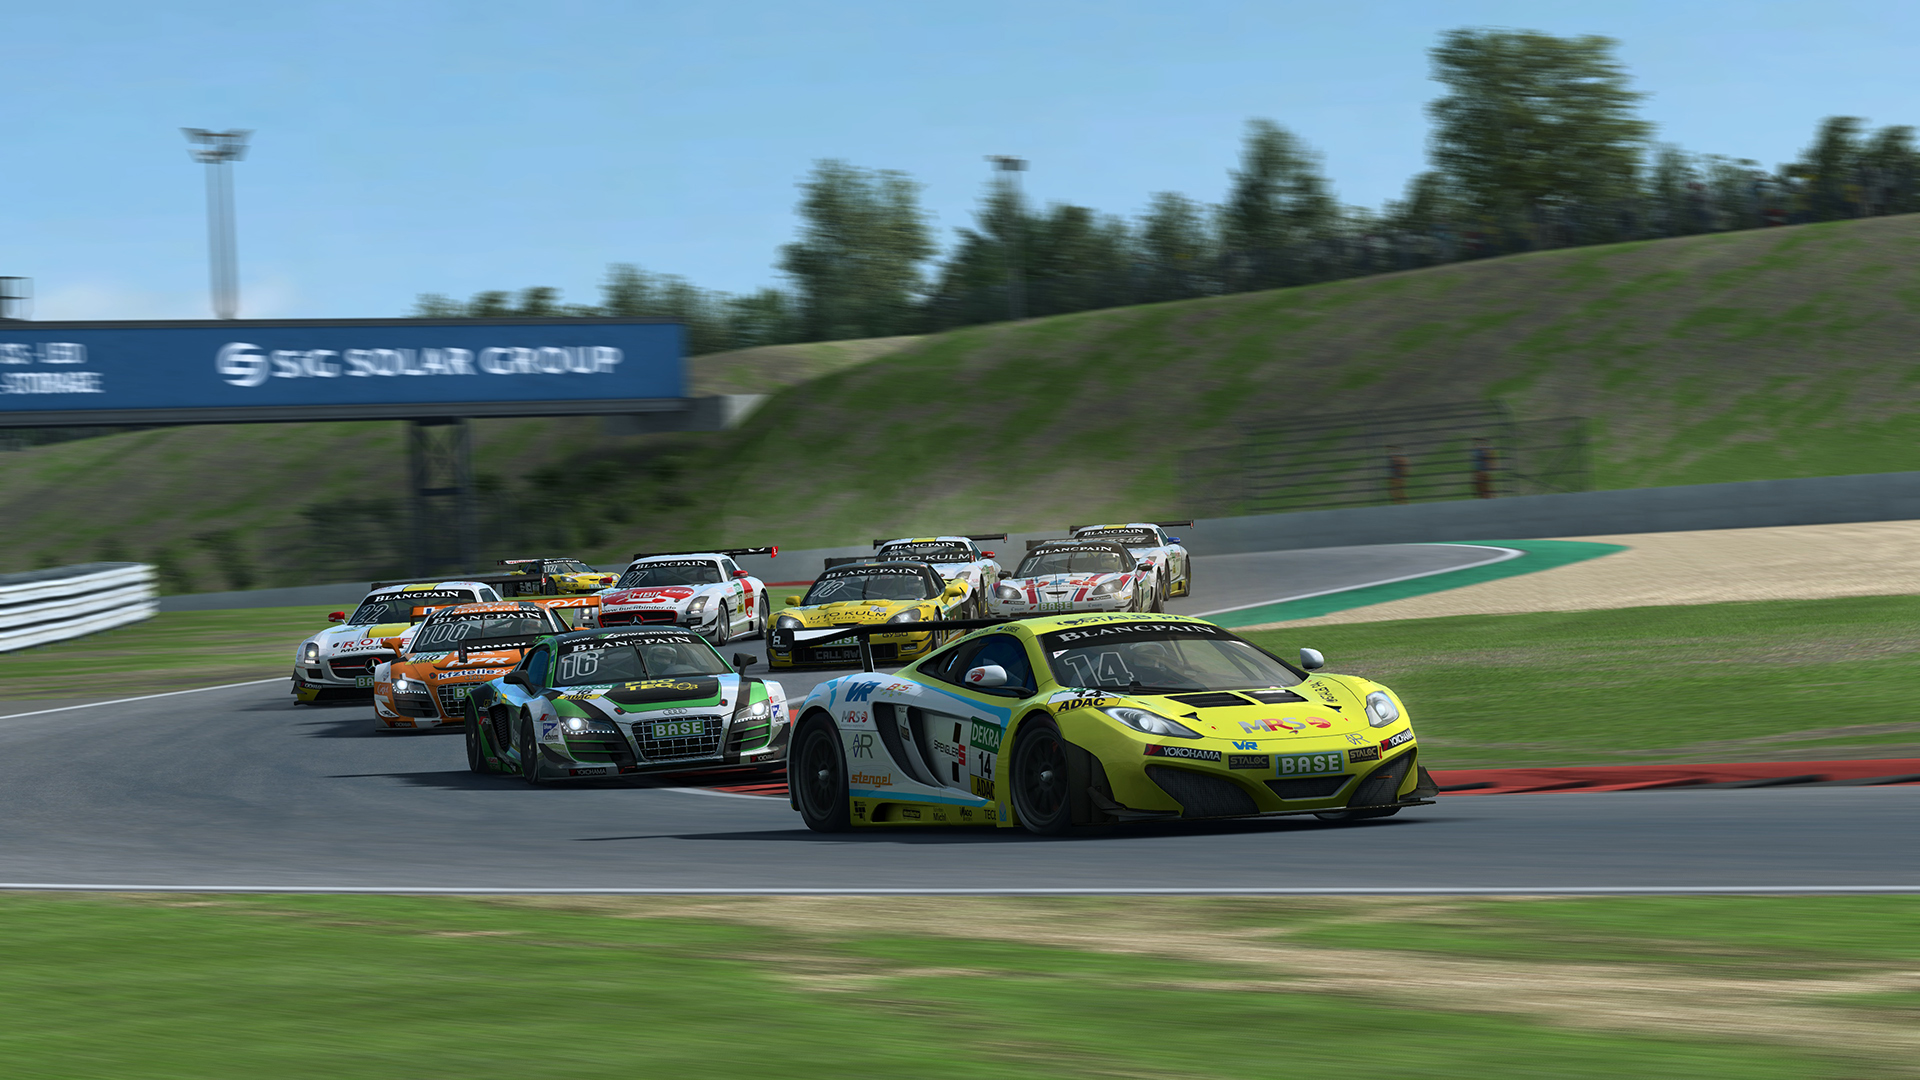 Best PC sim racing games 2015 - Project CARS and more | Expert Reviews